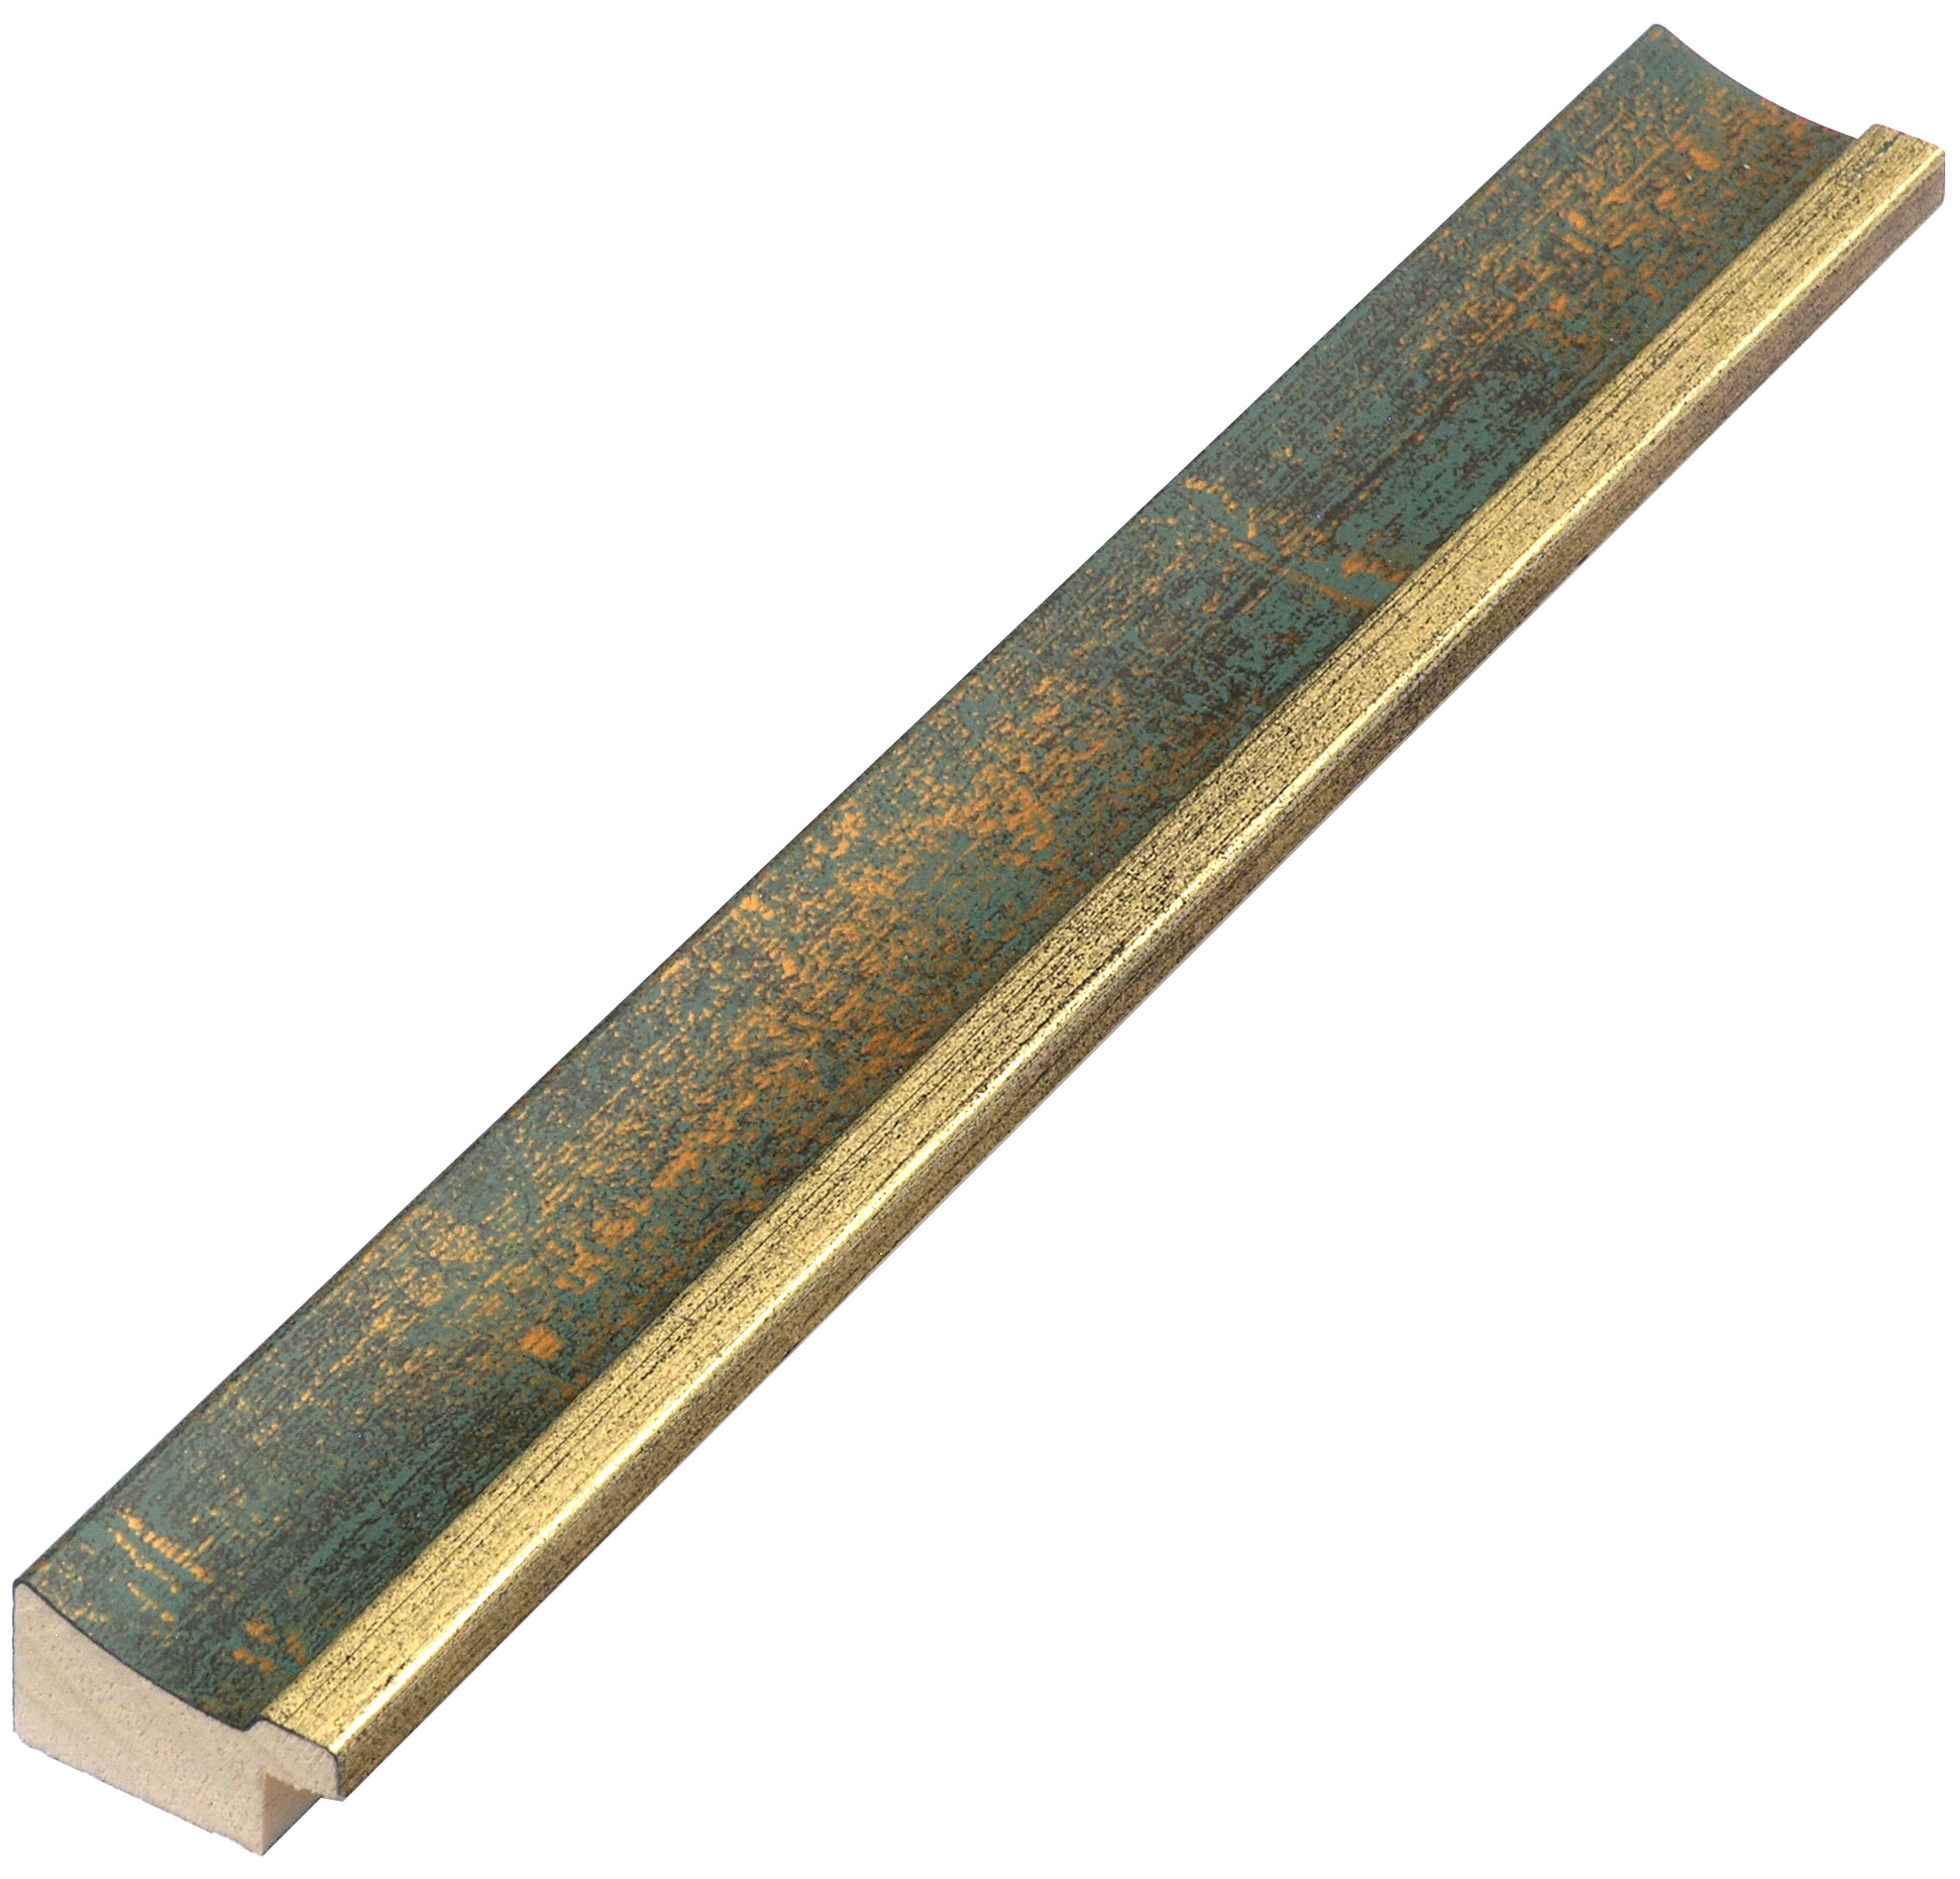 Moulding ayous - Width 25mm - Gold with green band